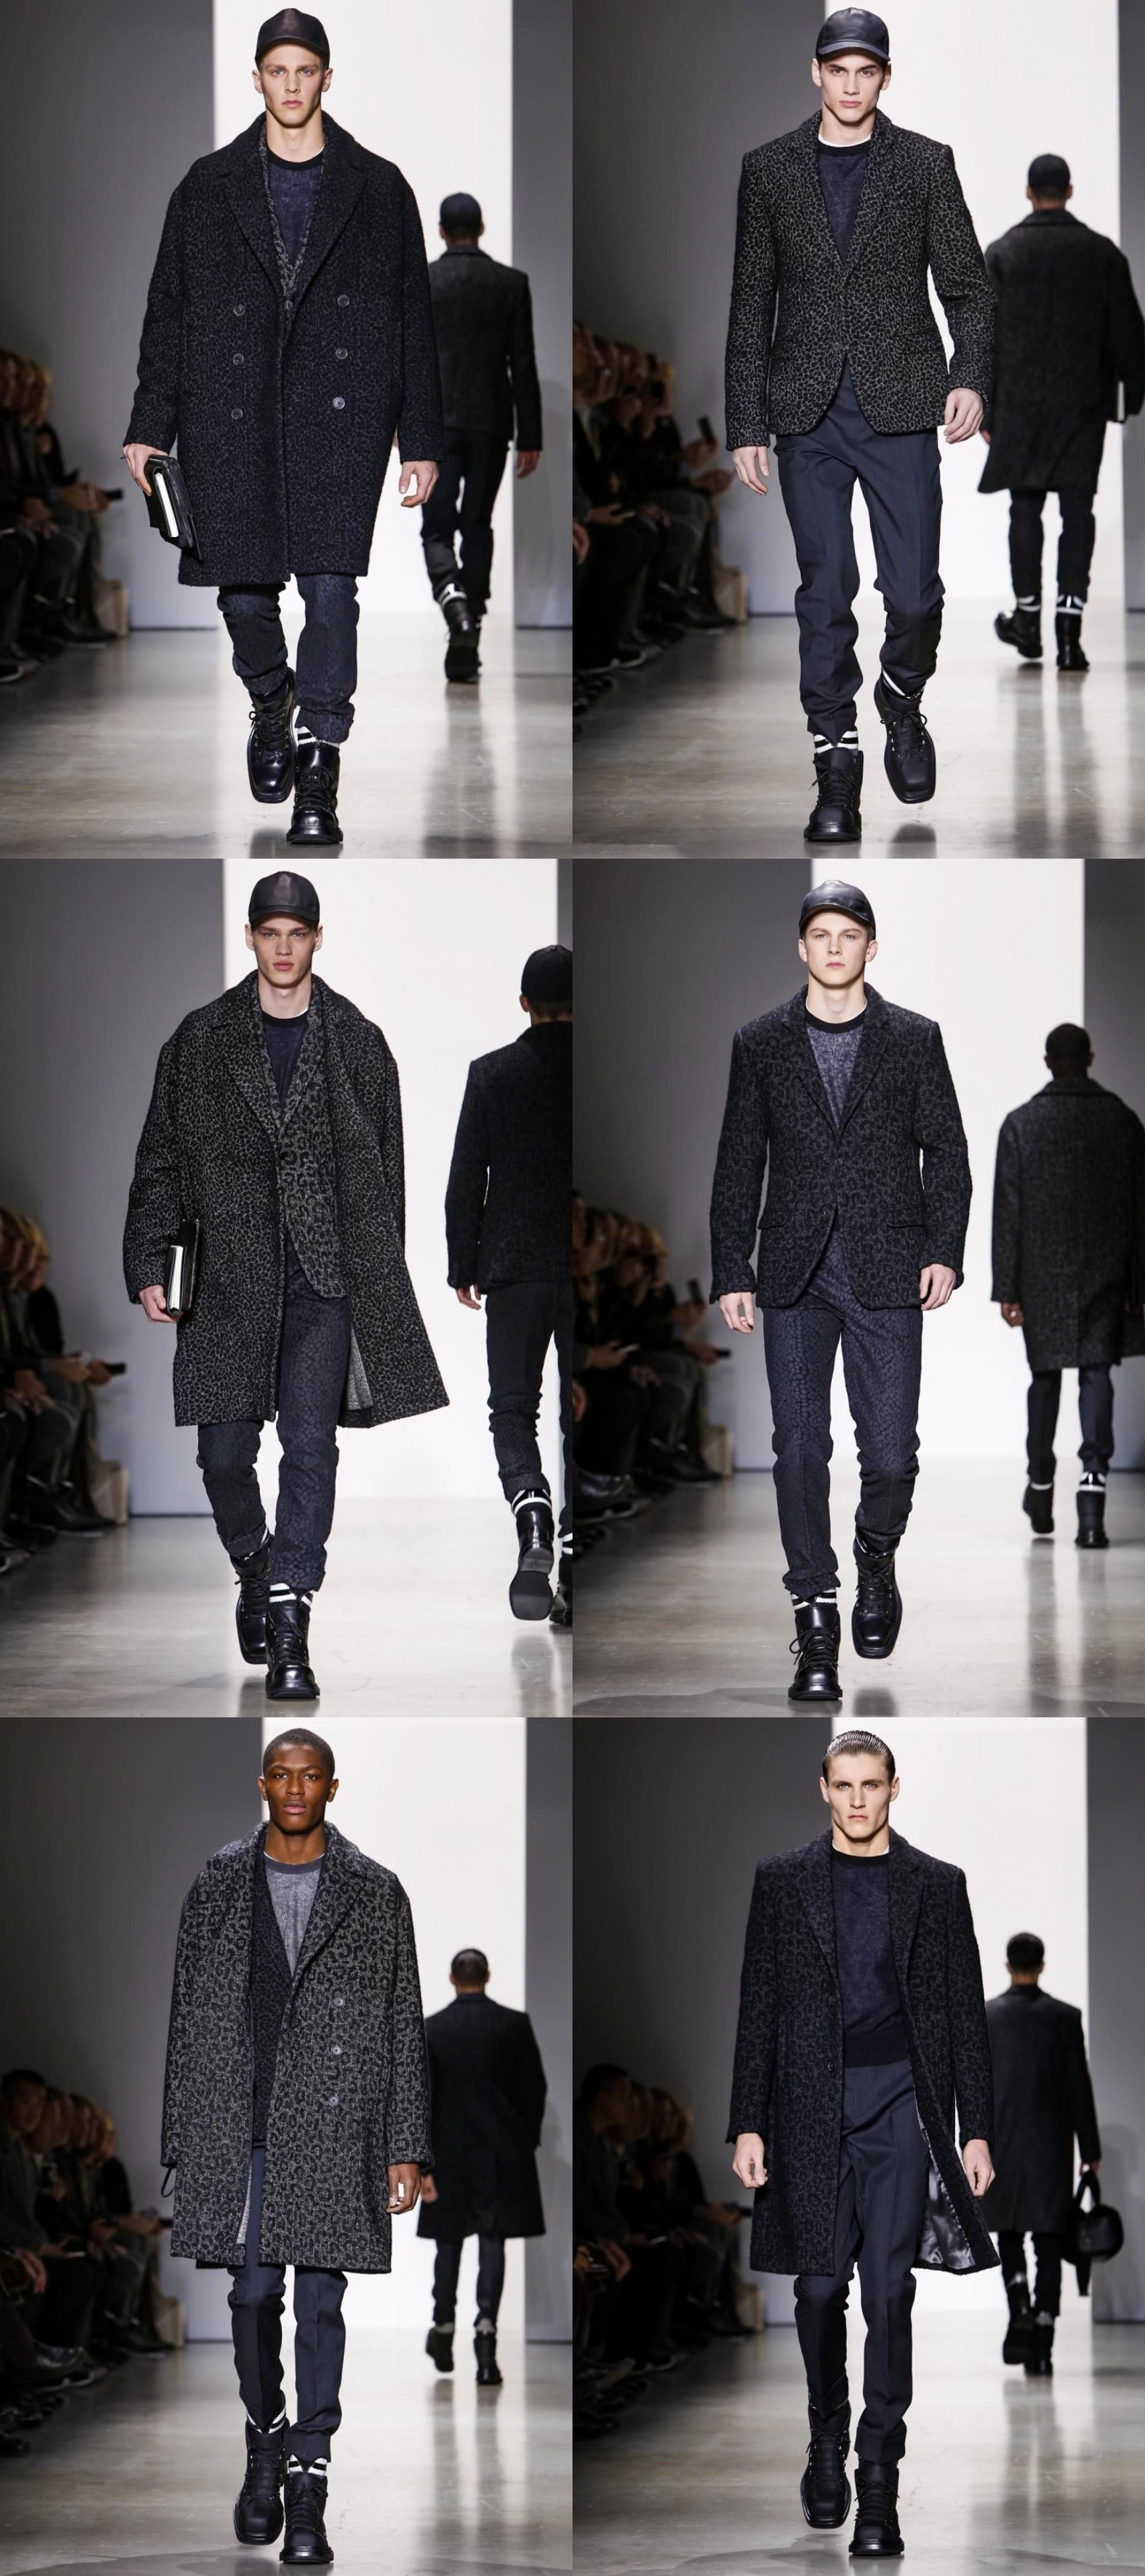 CALVIN KLEIN, fw15, fall winter 2015, milan fashion week, desfile 2015, moda masculina, tendencia masculina, menswear, fashion blogger, blogger, style, blogger, fashion blogger, moda sem censura, alex cursino, 5